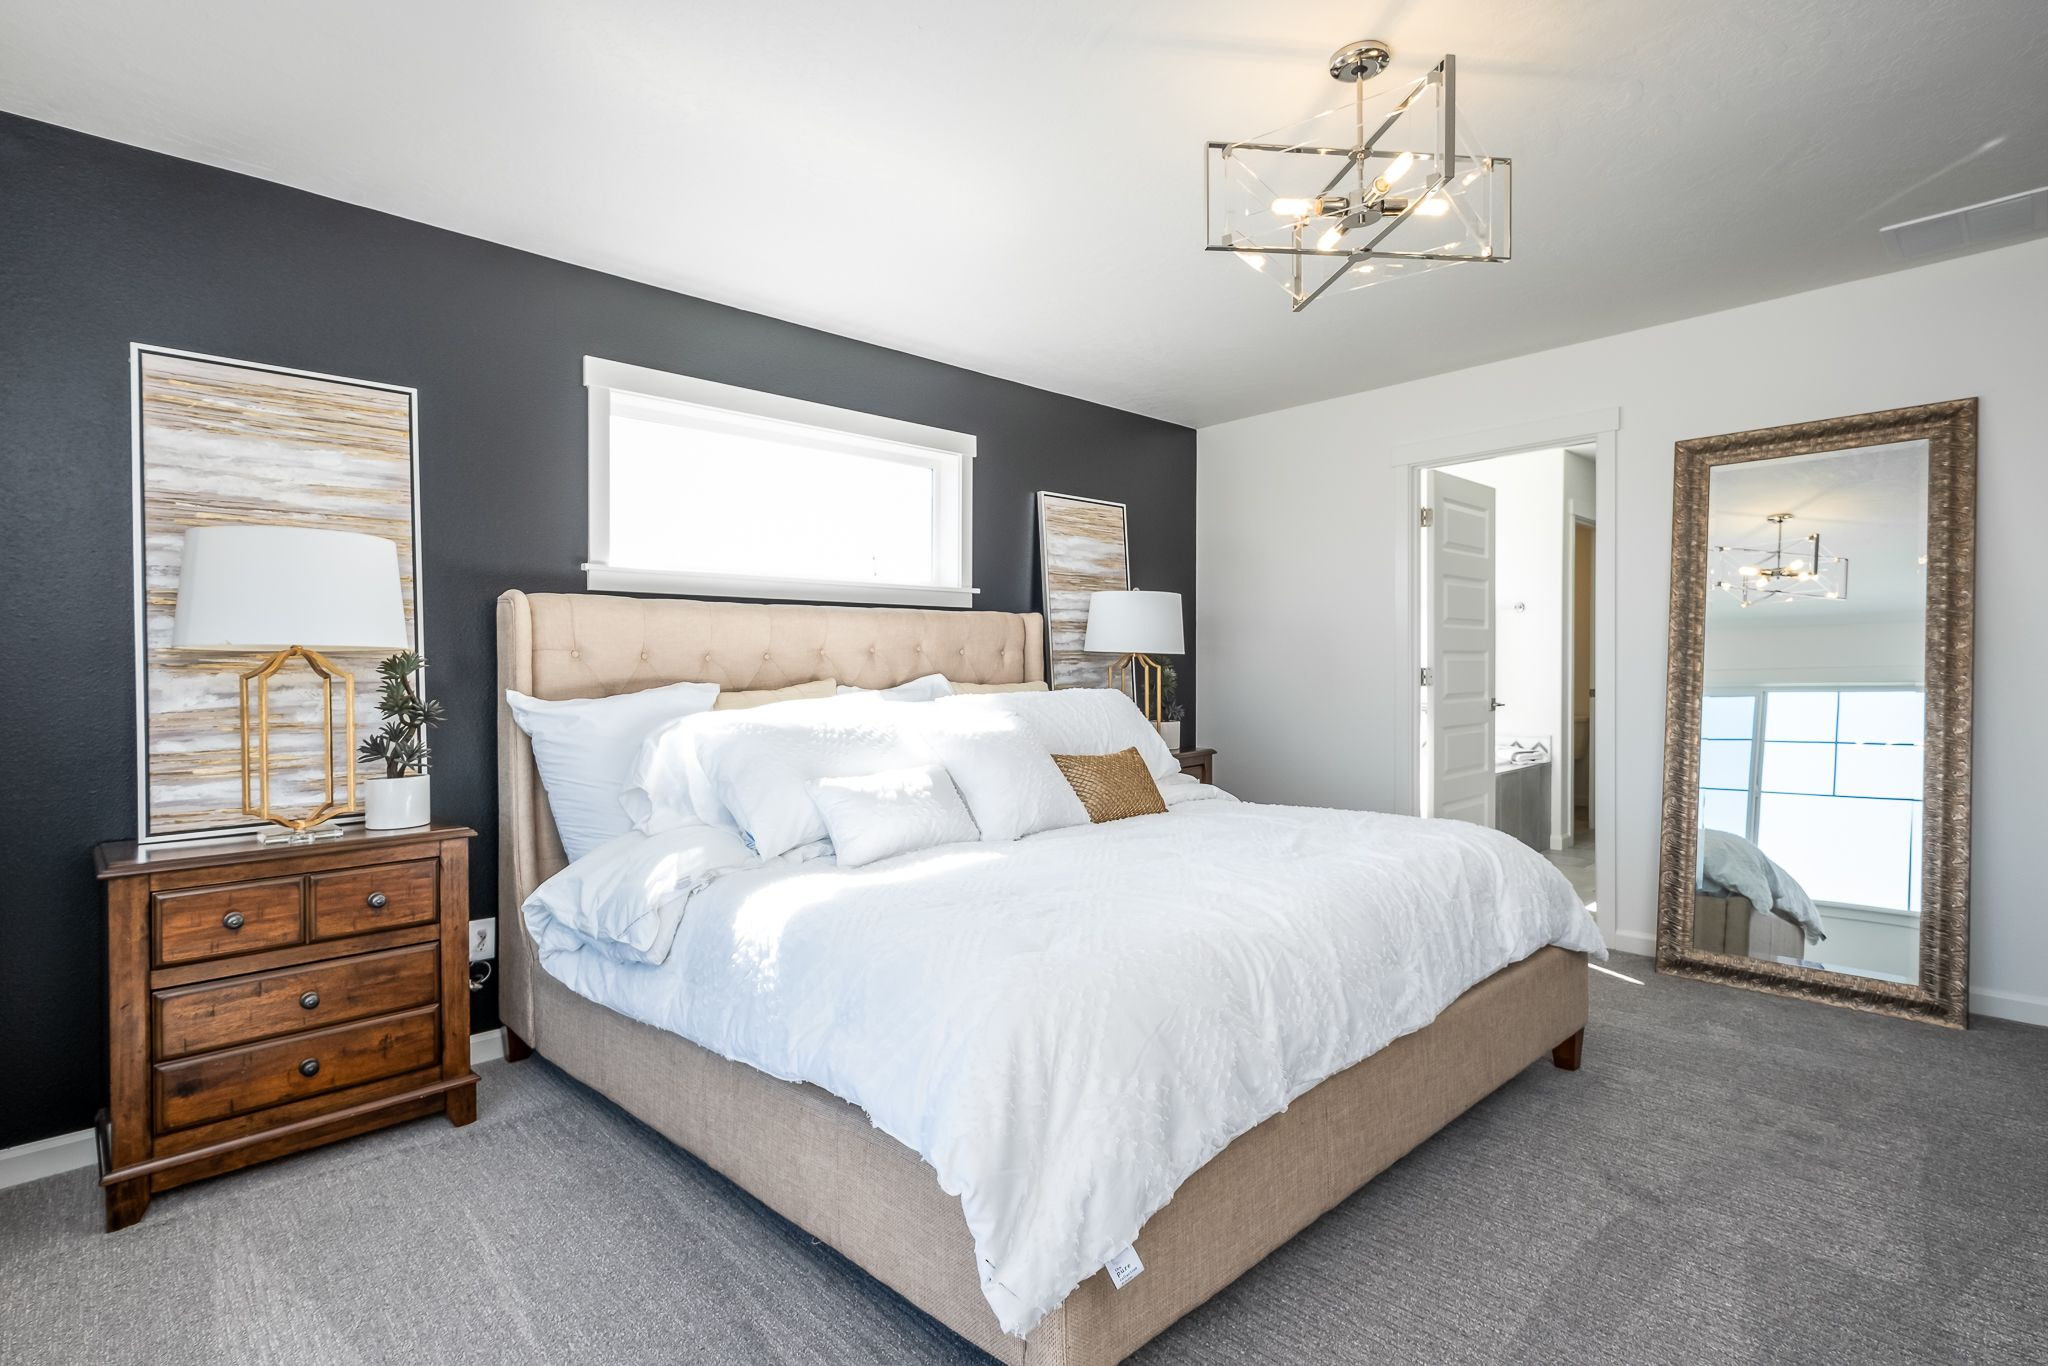 Bedroom featured in the Whidbey By New Tradition Homes in Richland, WA